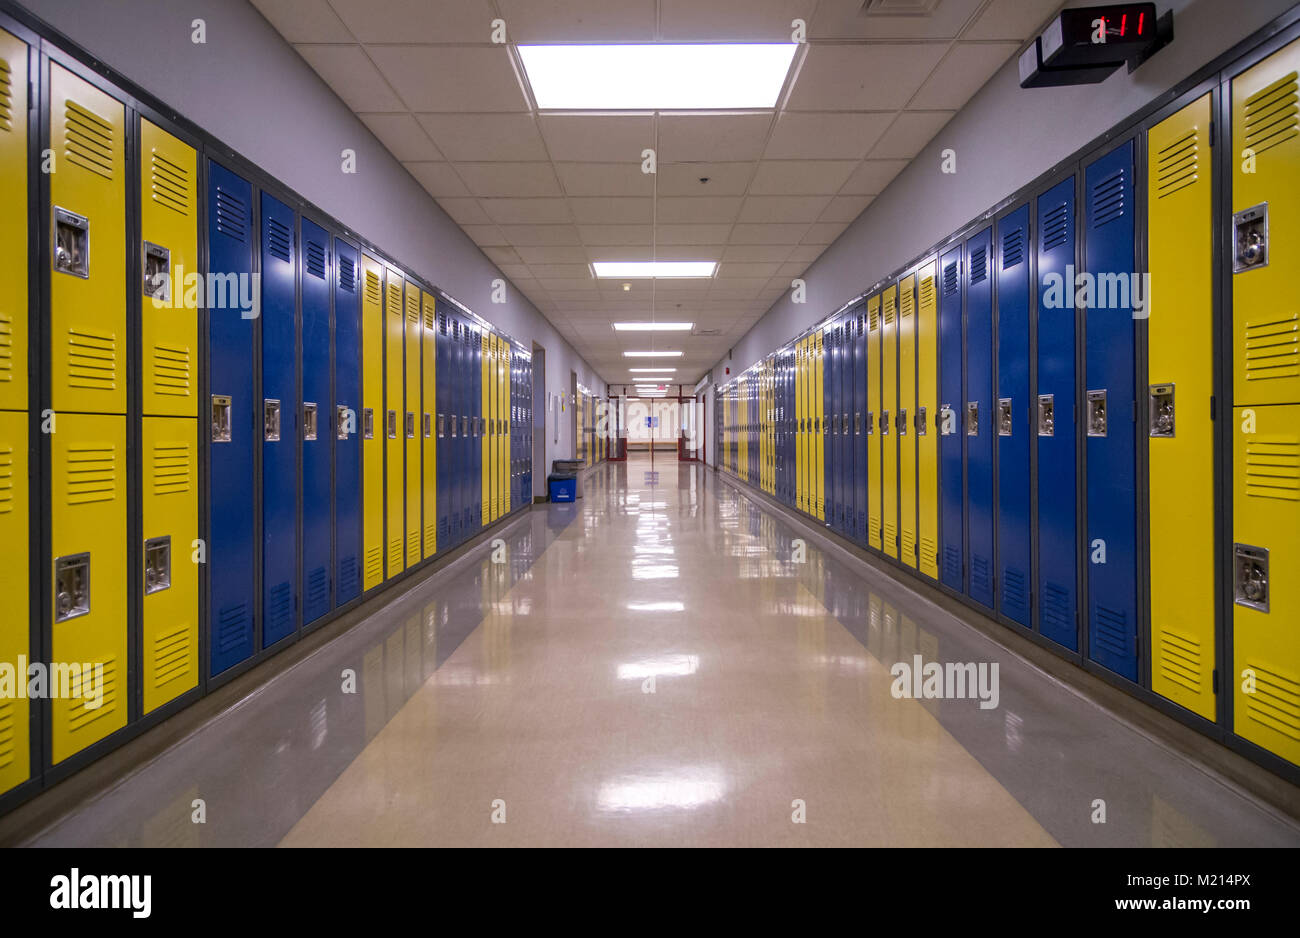 Symmetrical view of a school hallway with lockers on each side. - Stock Image